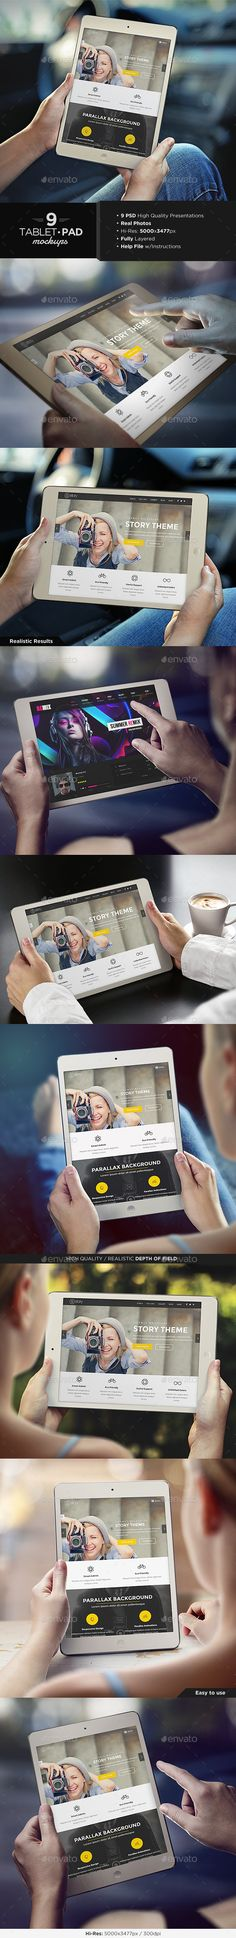 Tablet / iPad Mock-Up Set | #tabletmockup #ipadmockup | Download: http://graphicriver.net/item/tablet-pad-mockup-set/8899931?ref=ksioks